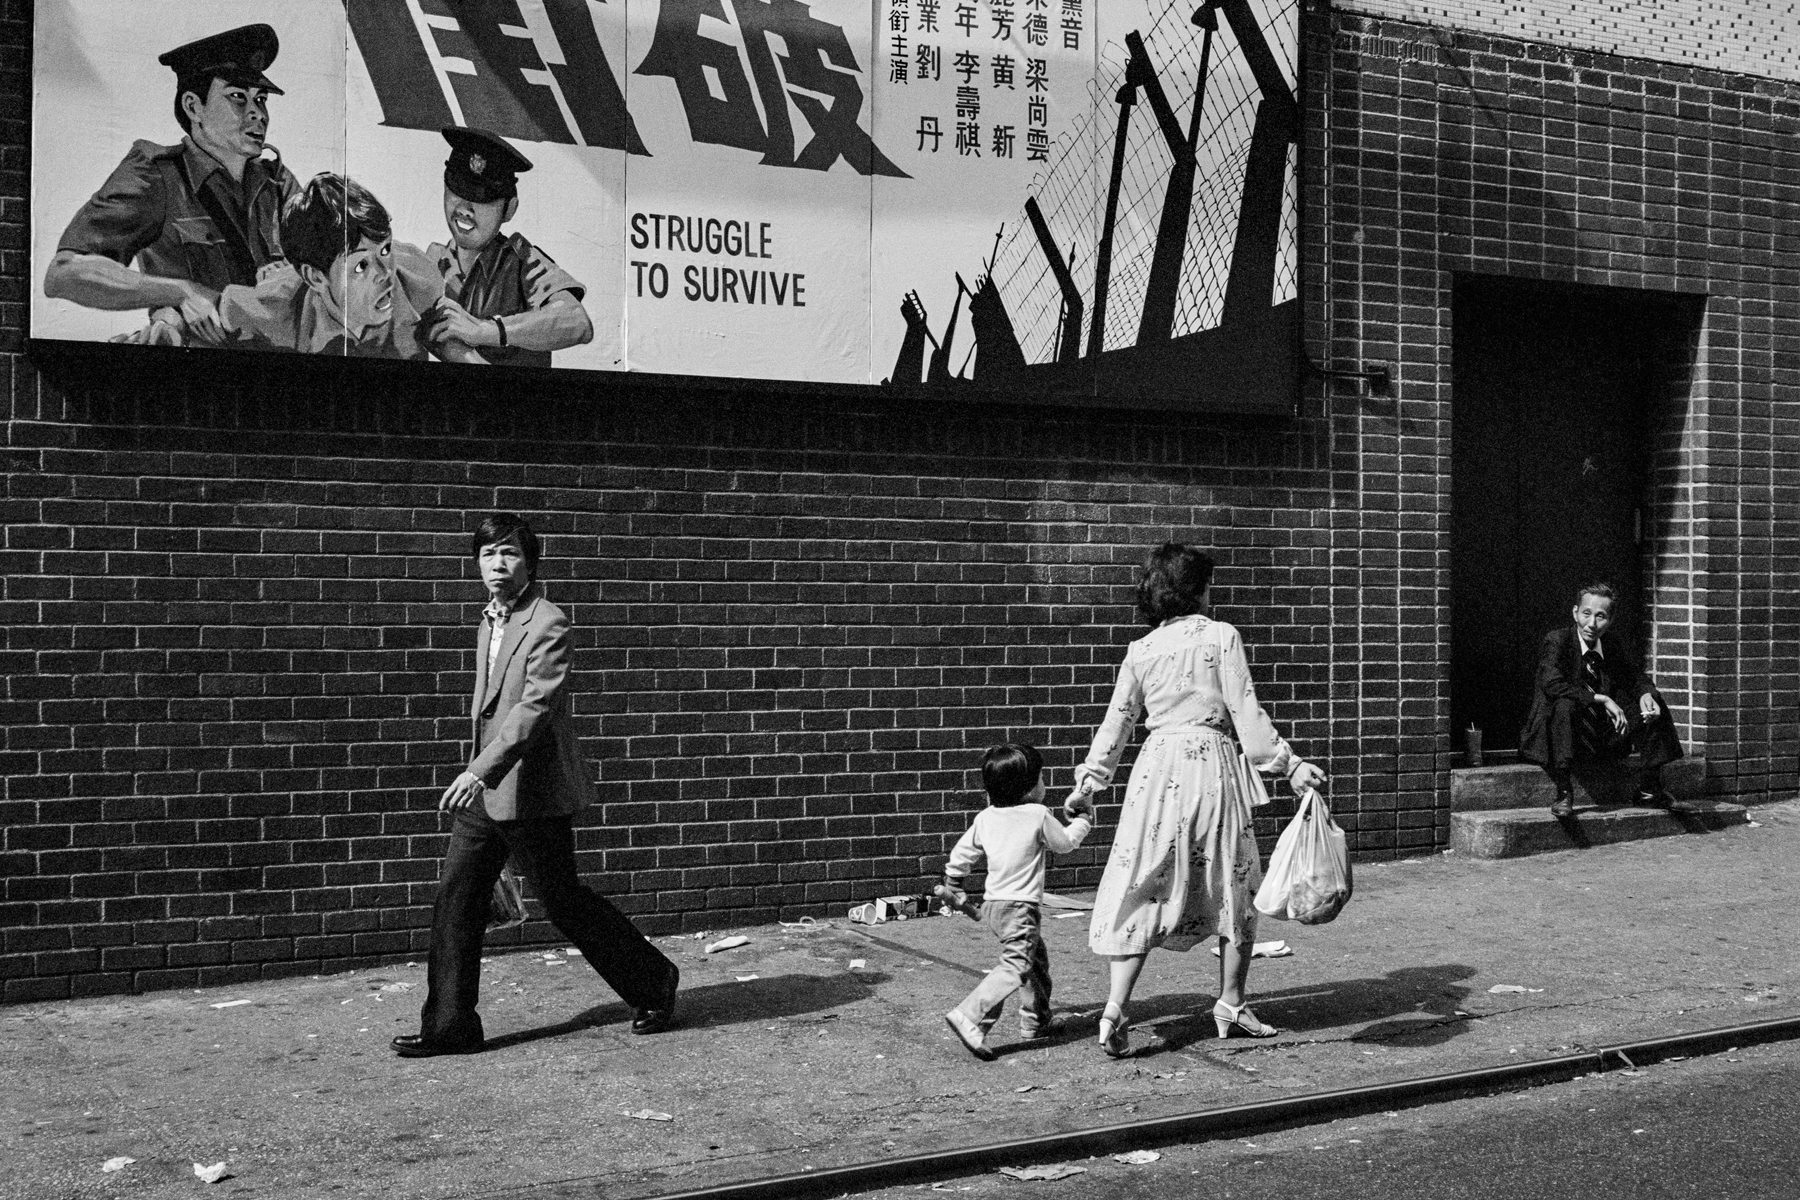 Catherine St., New York Chinatown, 1982.